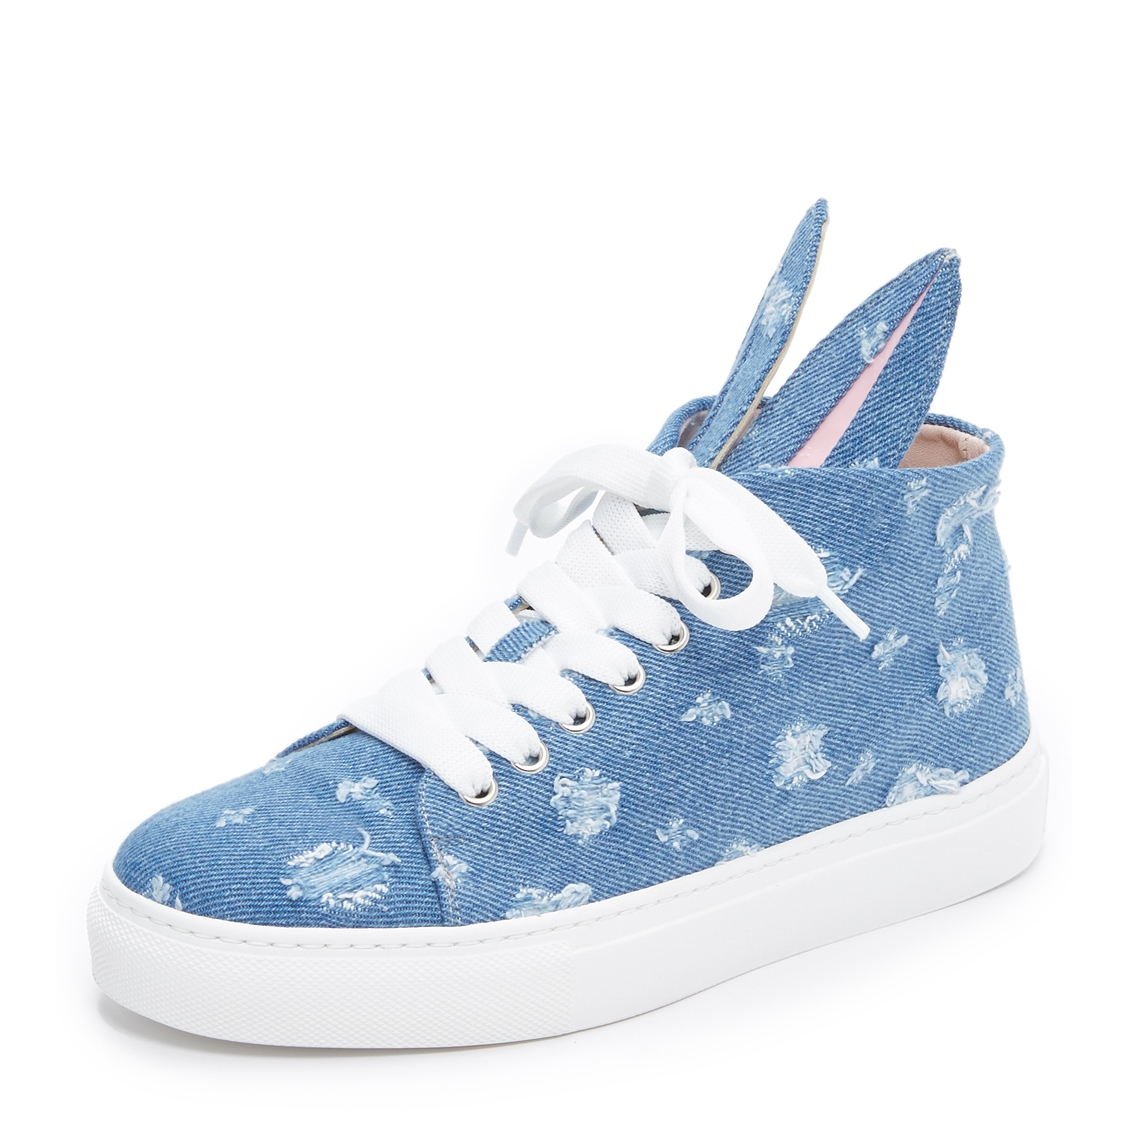 Denim hightops $258